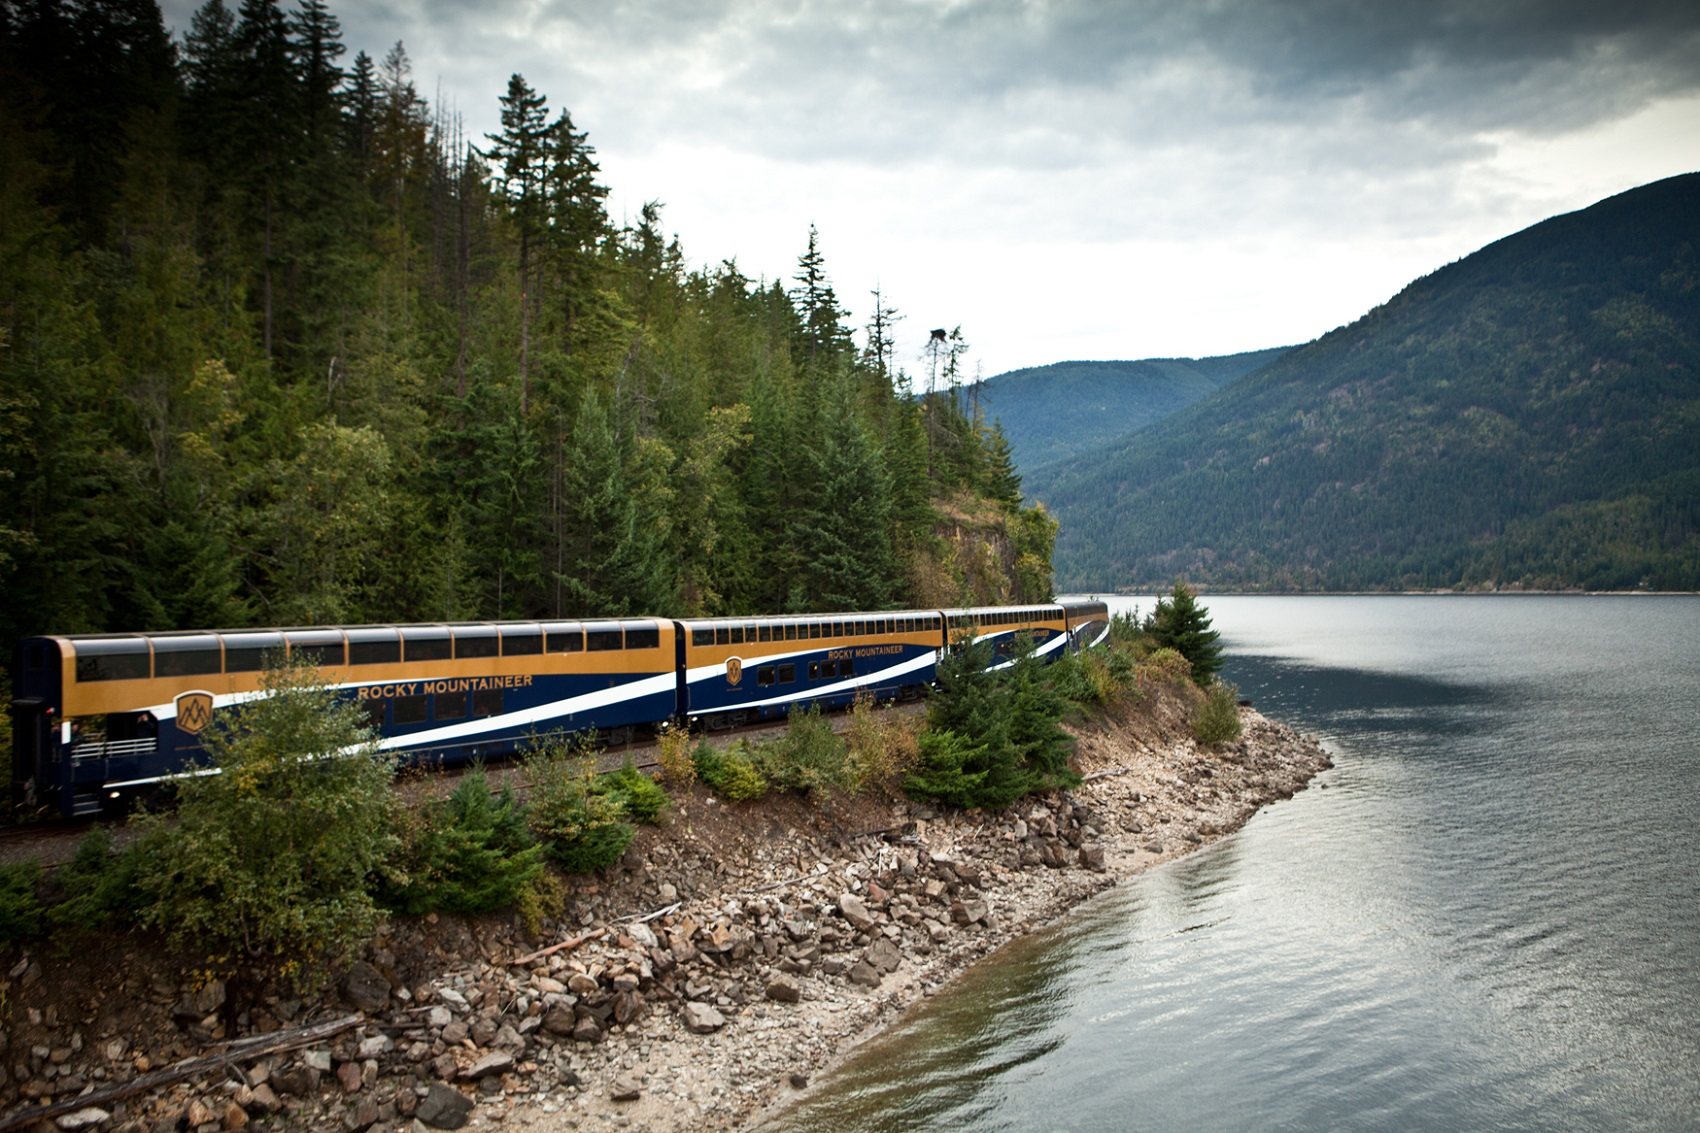 Ultimate Canadian Rockies - Rocky Mountaineer Train